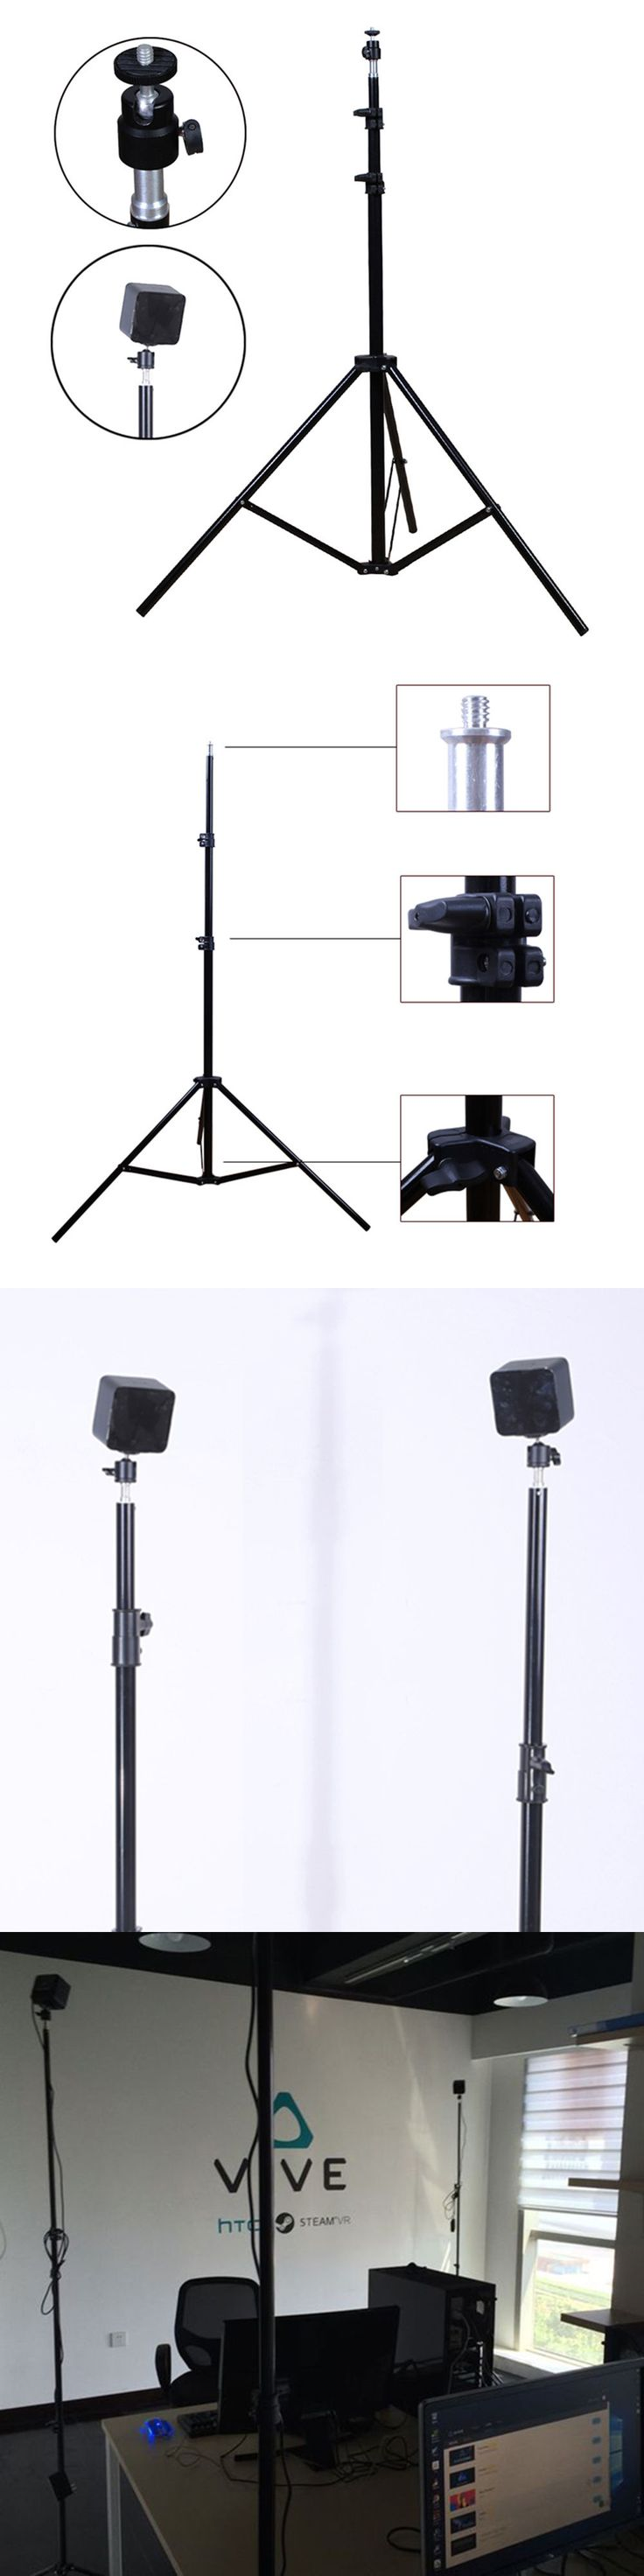 Electronics Parts: Locator Base Station Tripod Holder Mount With Ptz For Htc Vive Htc Vr Glasses -> BUY IT NOW ONLY: $53 on eBay!